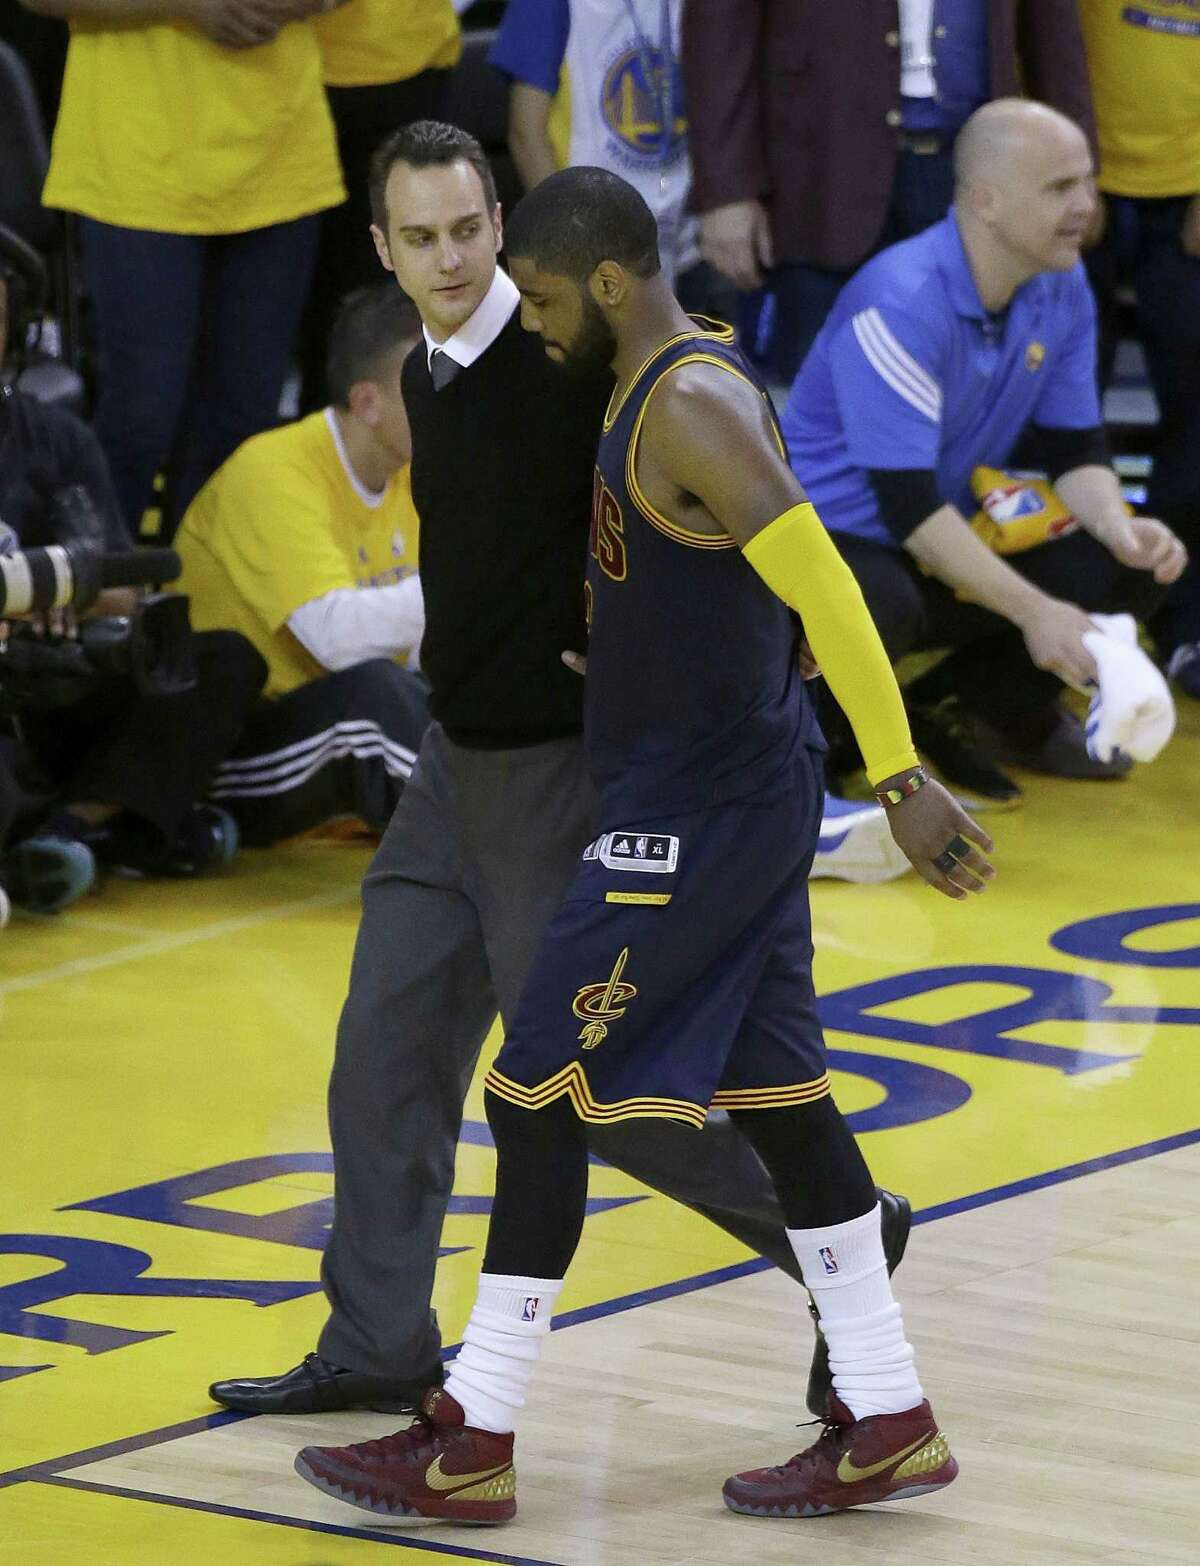 Cleveland Cavaliers guard Kyrie Irving walks off the floor after being injured during overtime of Game 1 of the NBA Finals Thursday against the Golden State Warriors in Oakland, Calif.